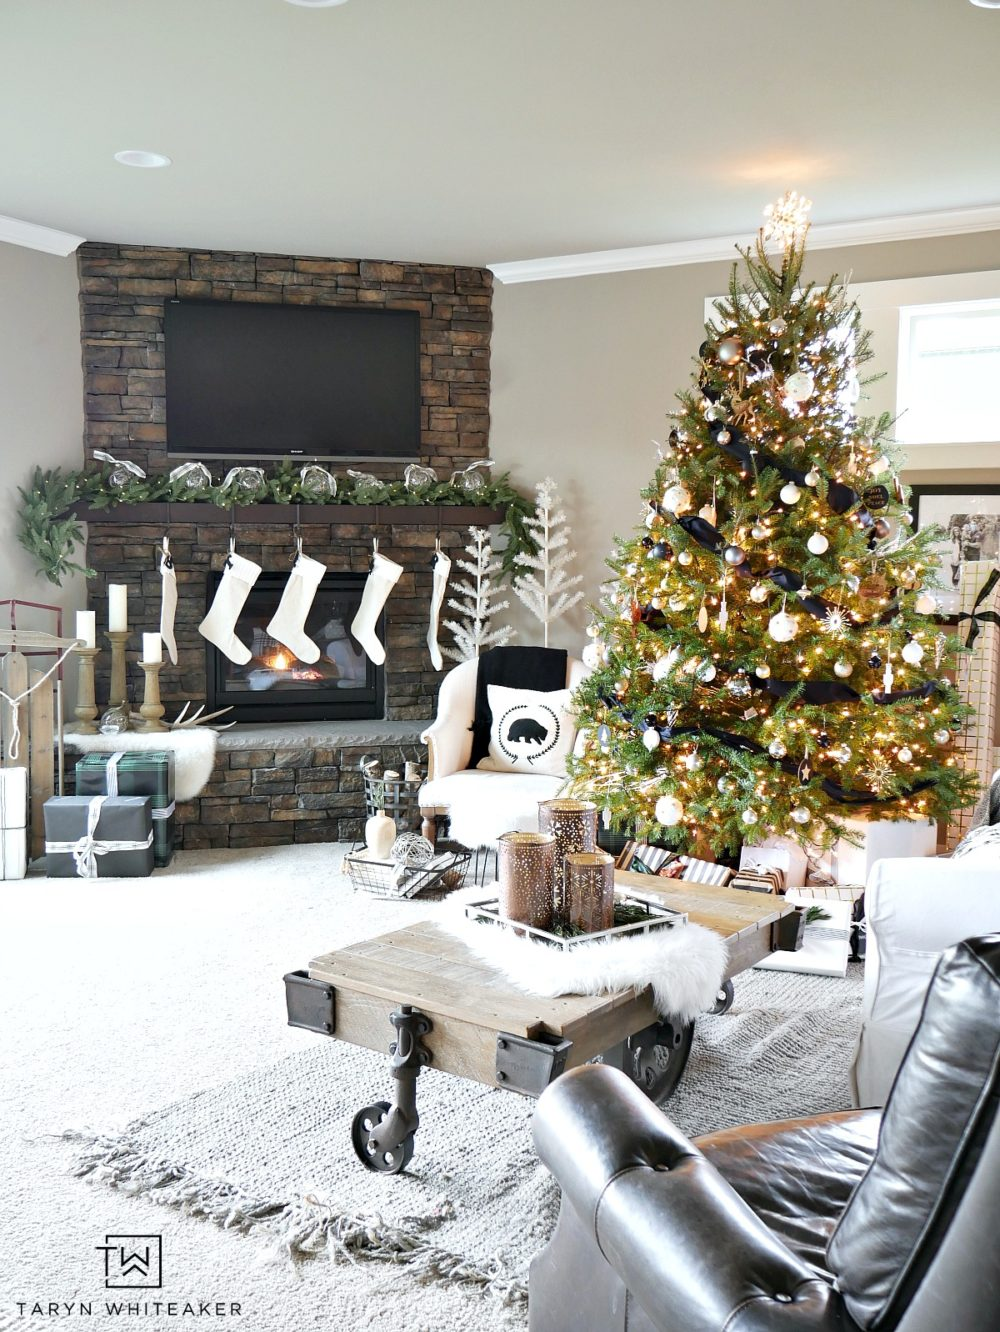 Take a look at this Black and White Christmas Home Tour filled with greenery, naturals and tons of texture! This unconventional Christmas is unique!